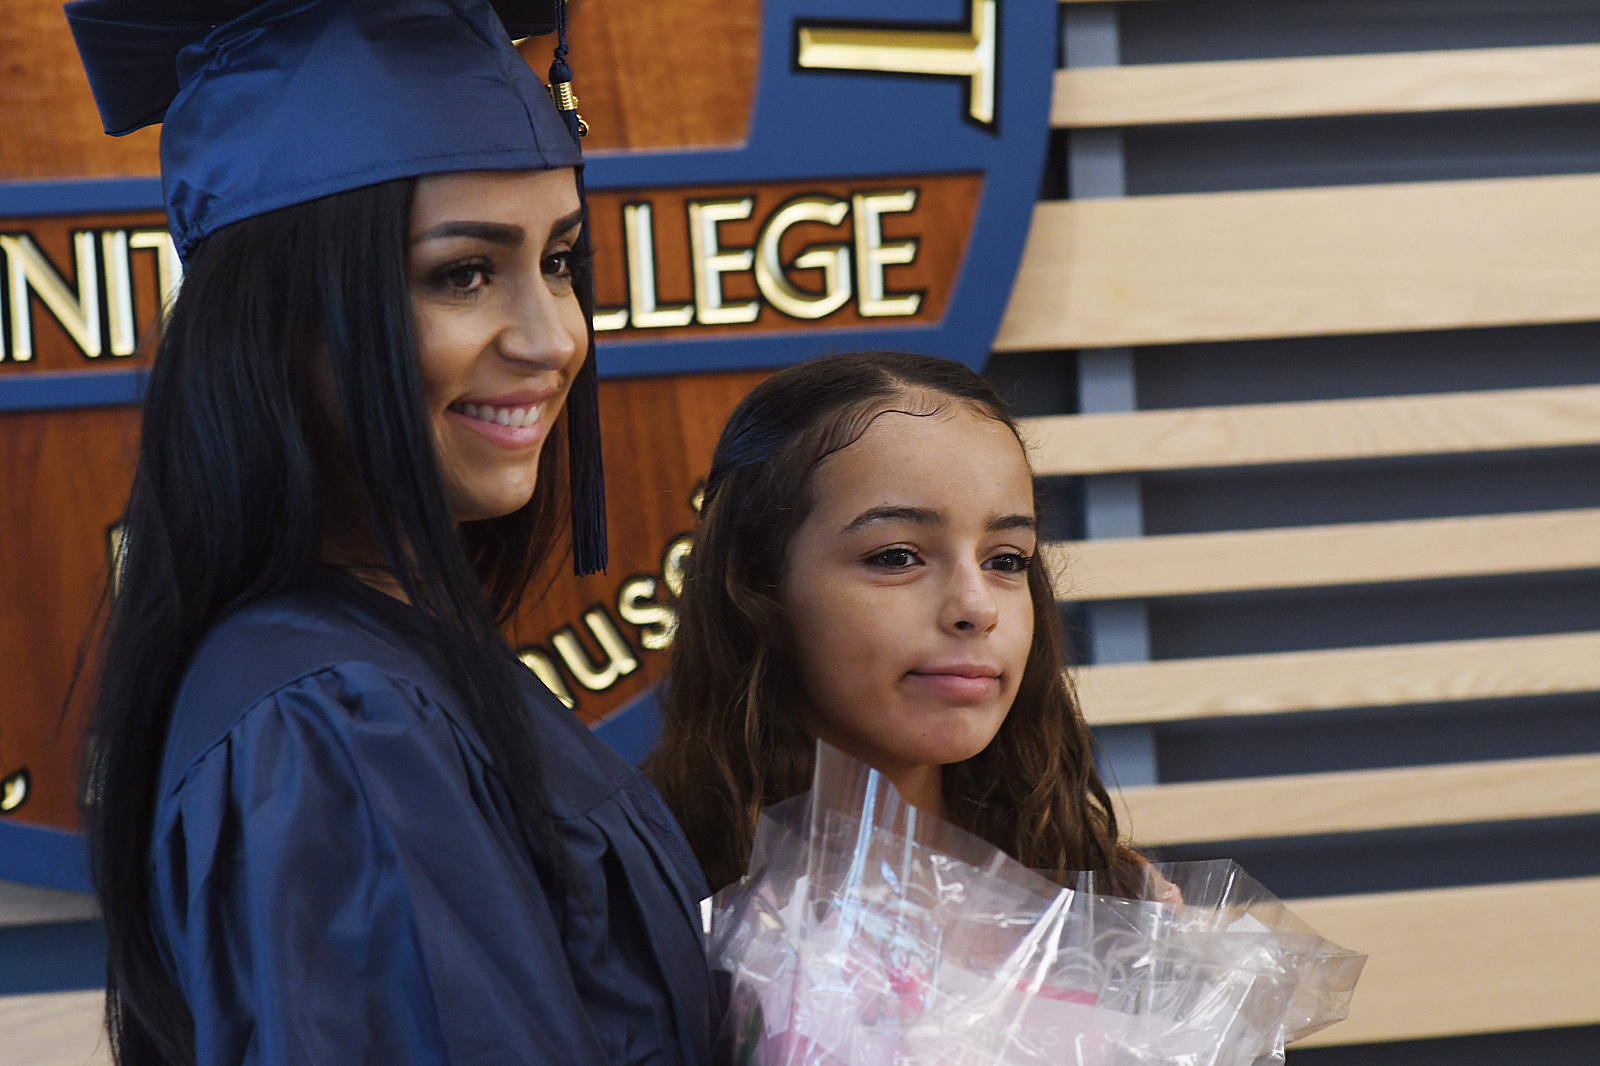 A woman in a graduation outfit poses with her daughter for a photo.